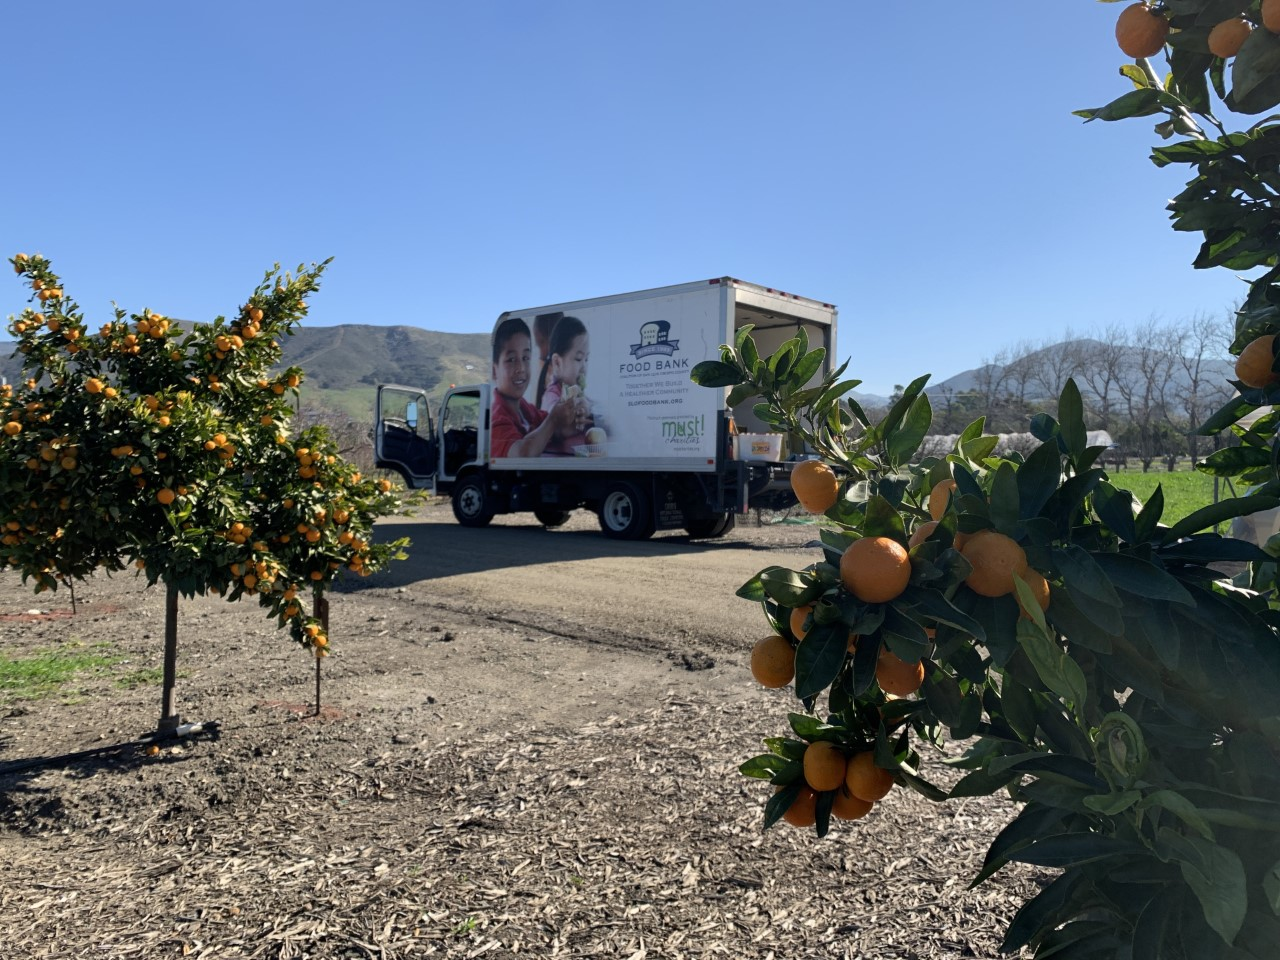 A truck from the San Luis Obispo Food Bank is parked near citrus trees in the Cal Poly Orchard.